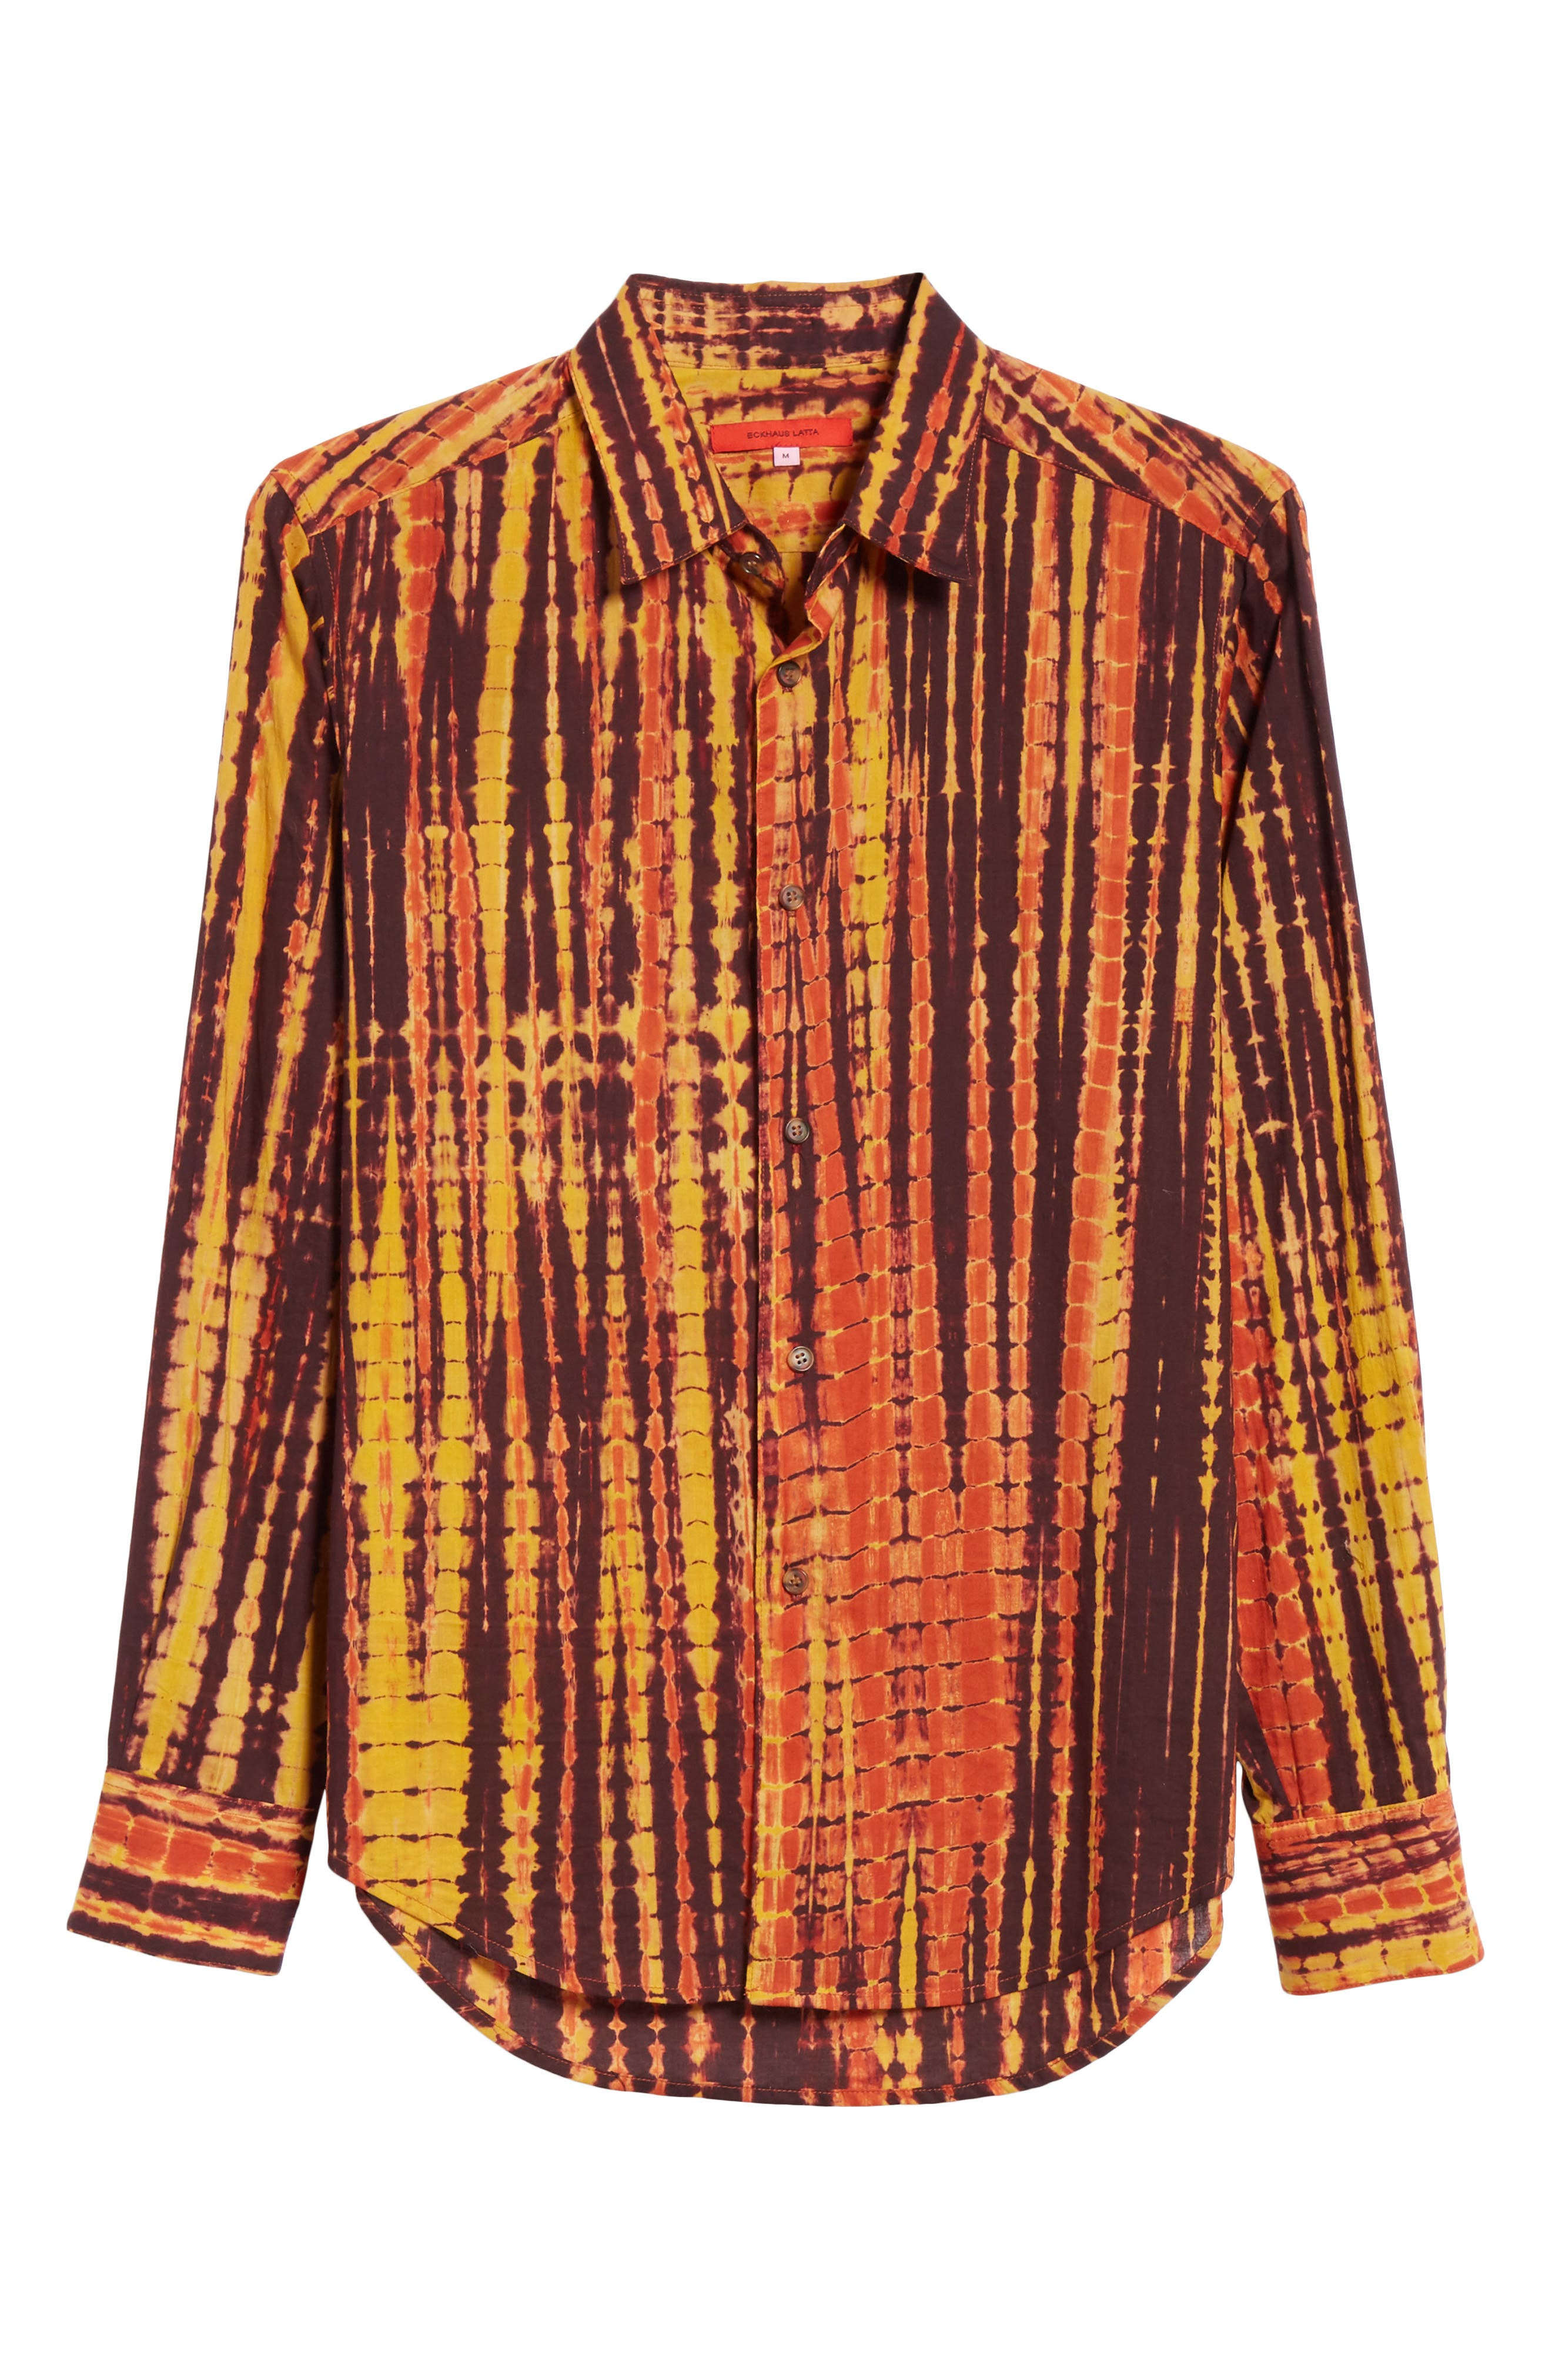 Hand Dyed Cotton Shirt,                             Alternate thumbnail 6, color,                             BY - BROWN AND YELLOW